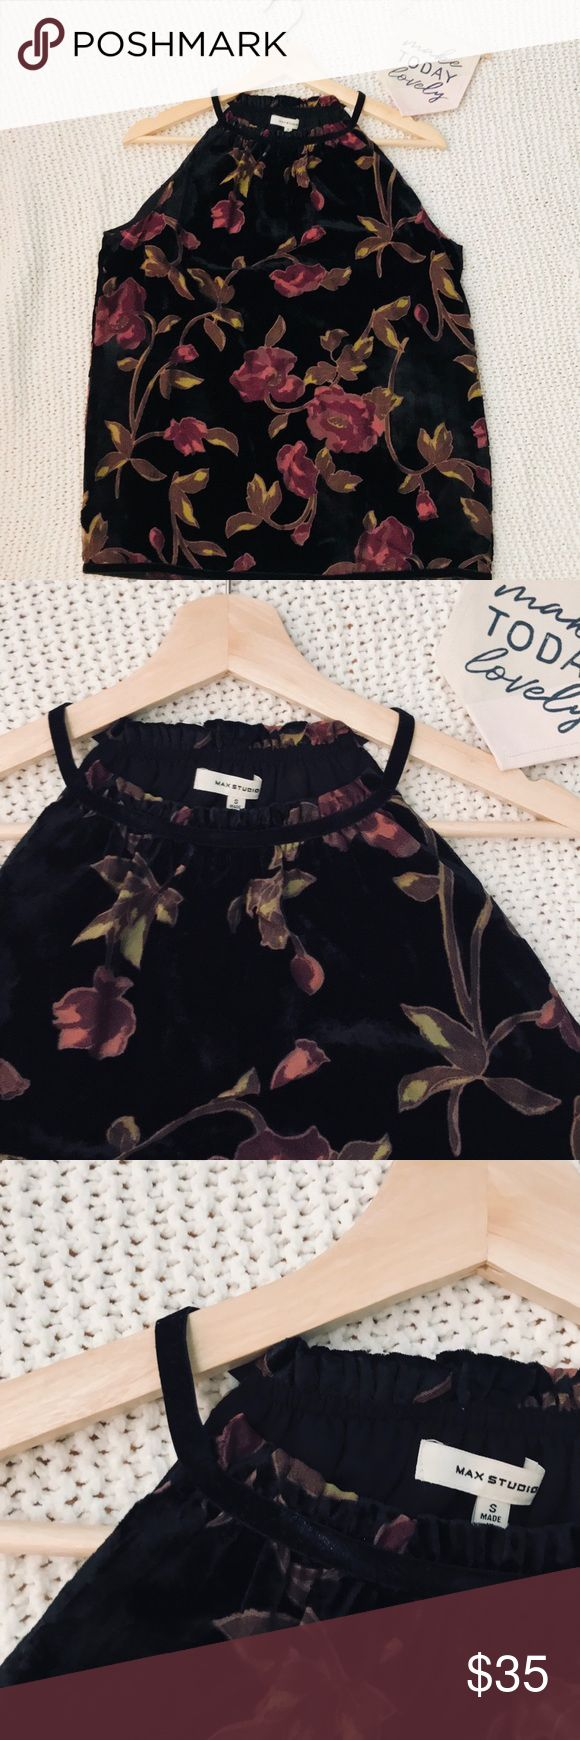 *FREE SHIPPING* MAX STUDIO velvet halter top Max studio velvet halter with floral design size small NWT chiffon lining  get ready for summer Max Studio Tops Blouses